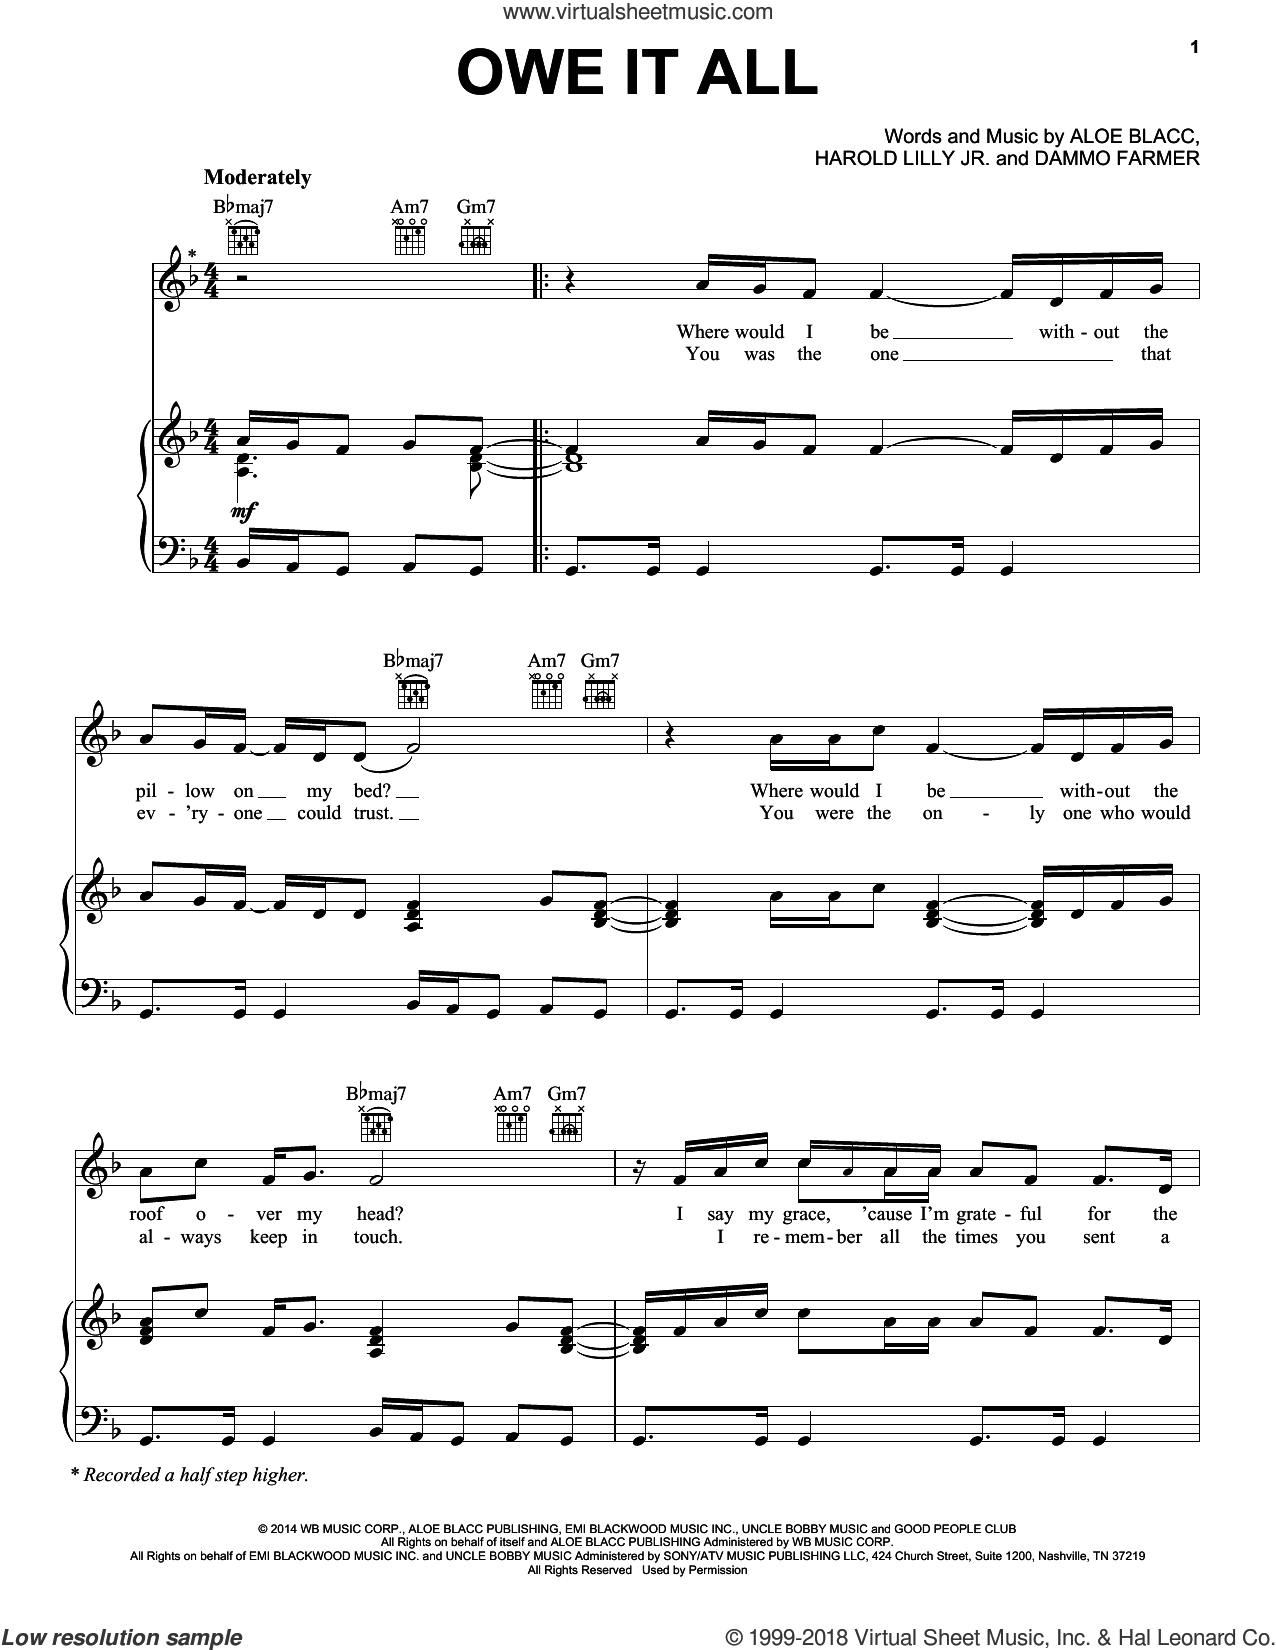 Owe It All sheet music for voice, piano or guitar by Harold Lilly, Jr. and Aloe Blacc. Score Image Preview.